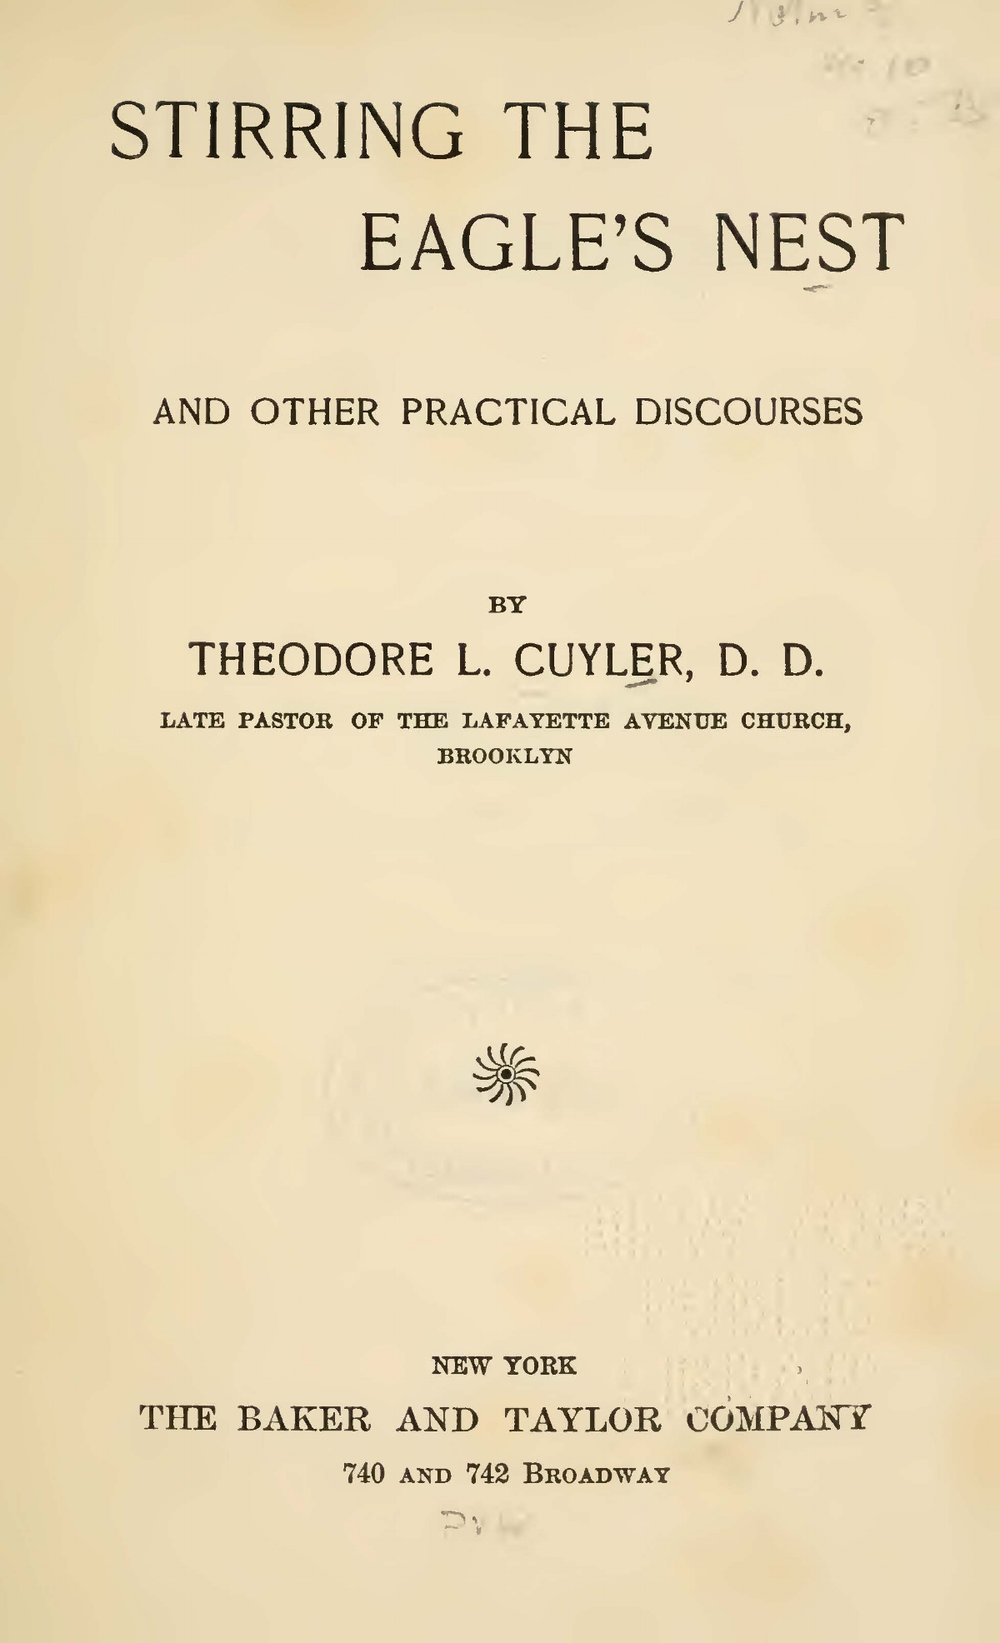 Cuyler, Theodore Ledyard, Stirring the Eagle's Nest Title Page.jpg